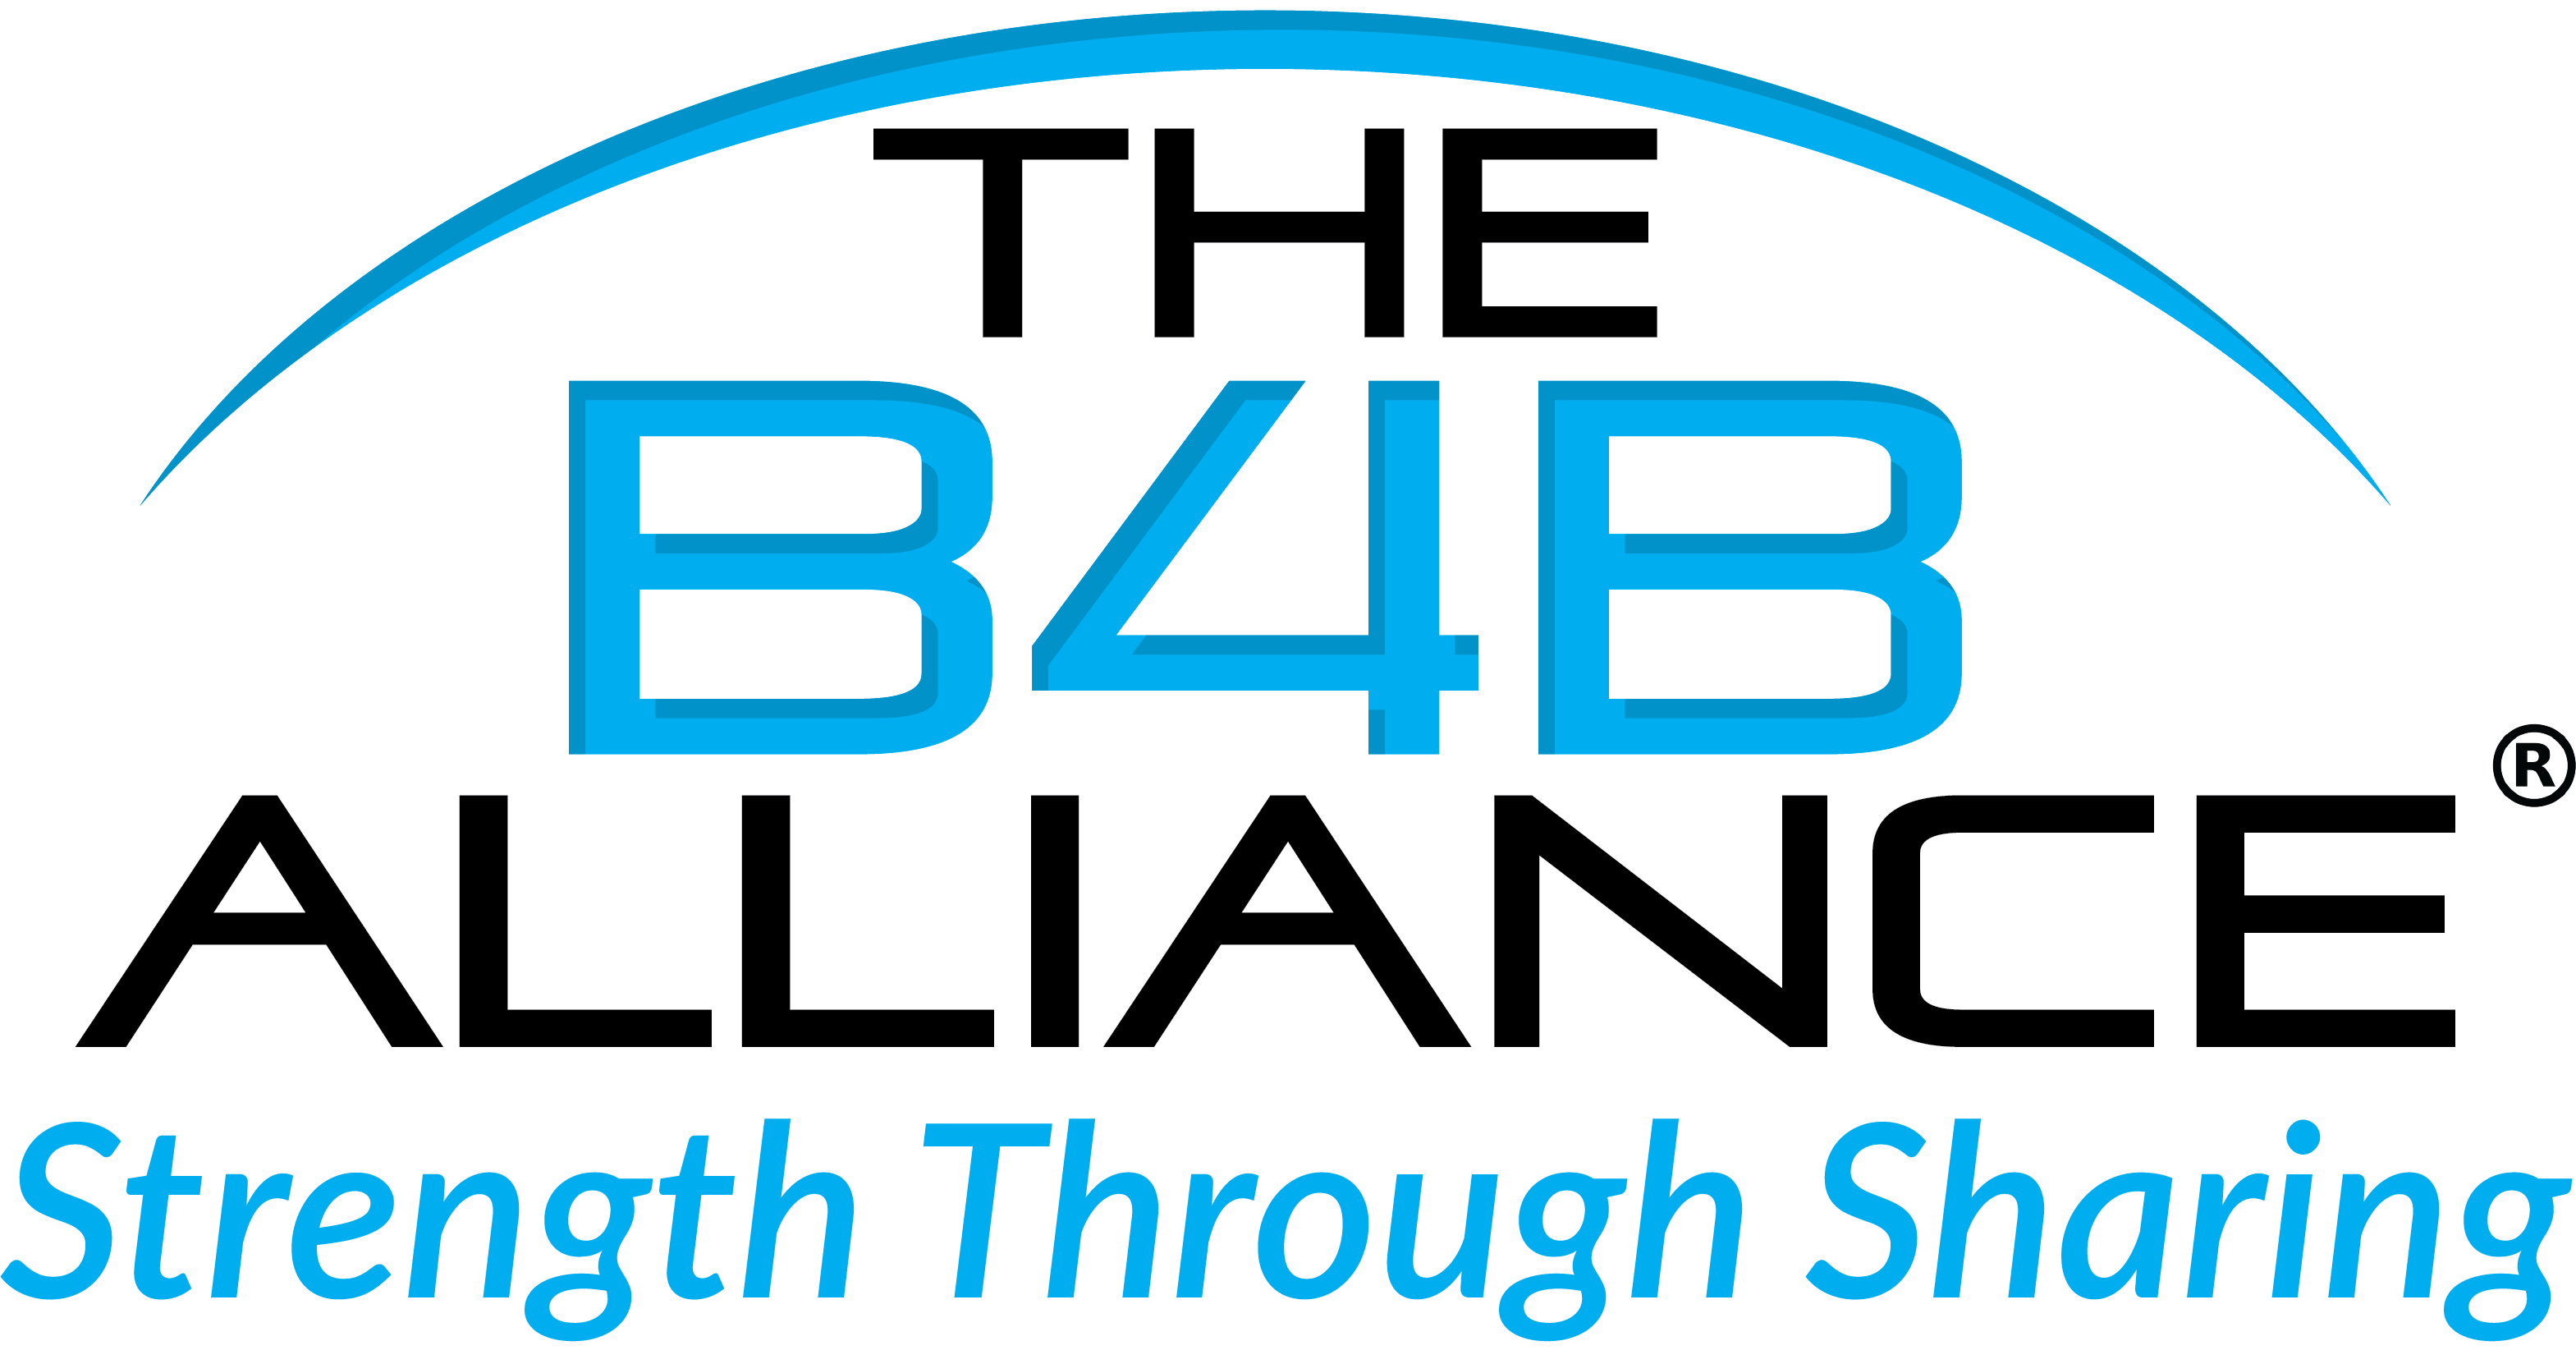 The B4B Alliance